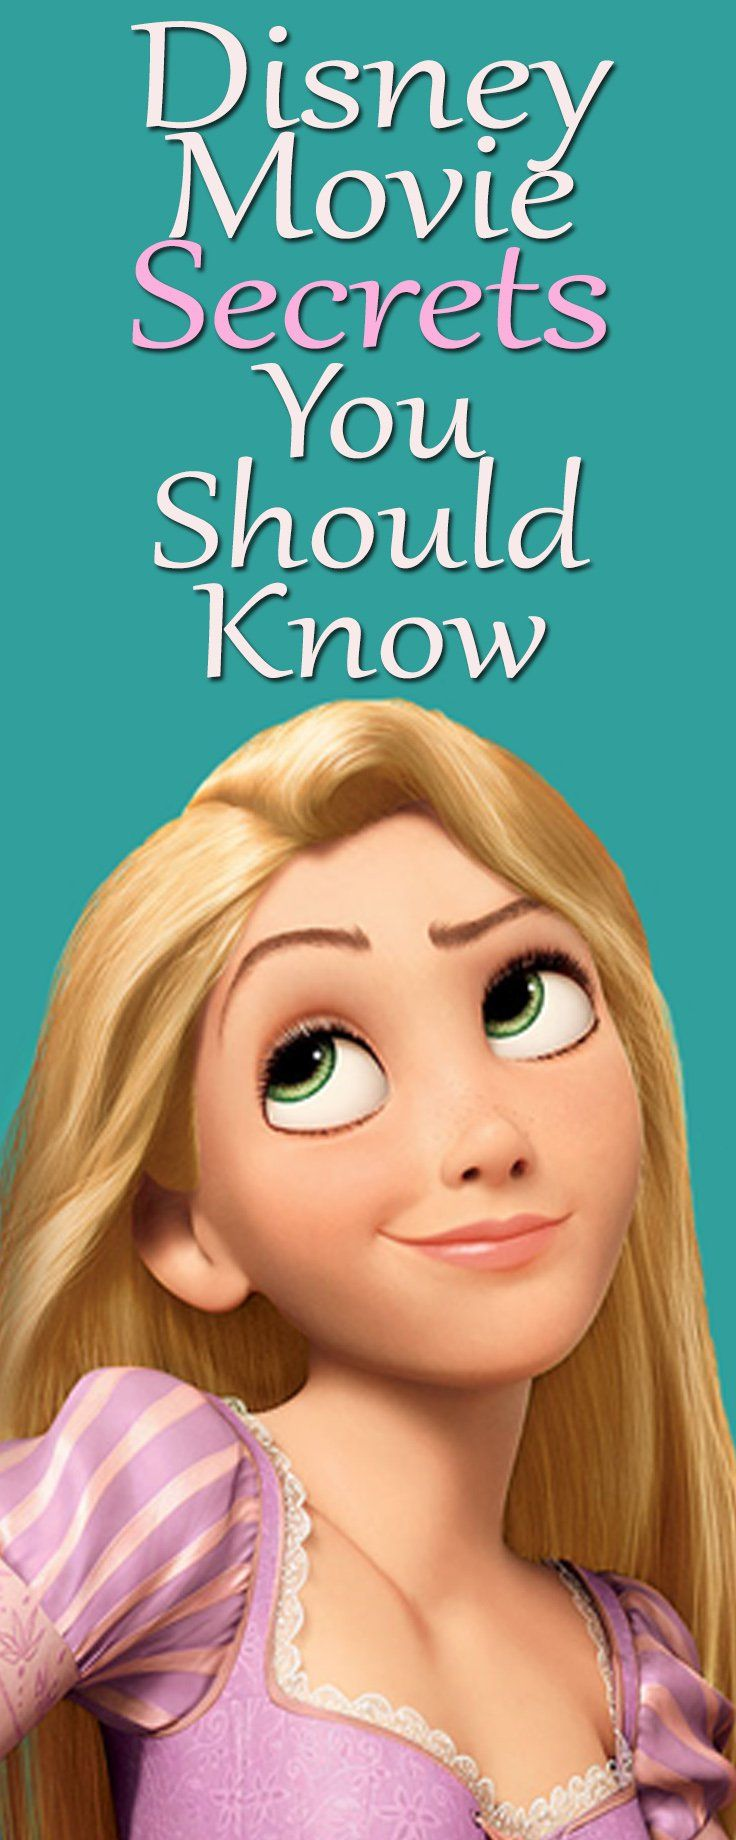 Oh really? I haven't noticed that ever since! These Disney Secrets will shock you real good!